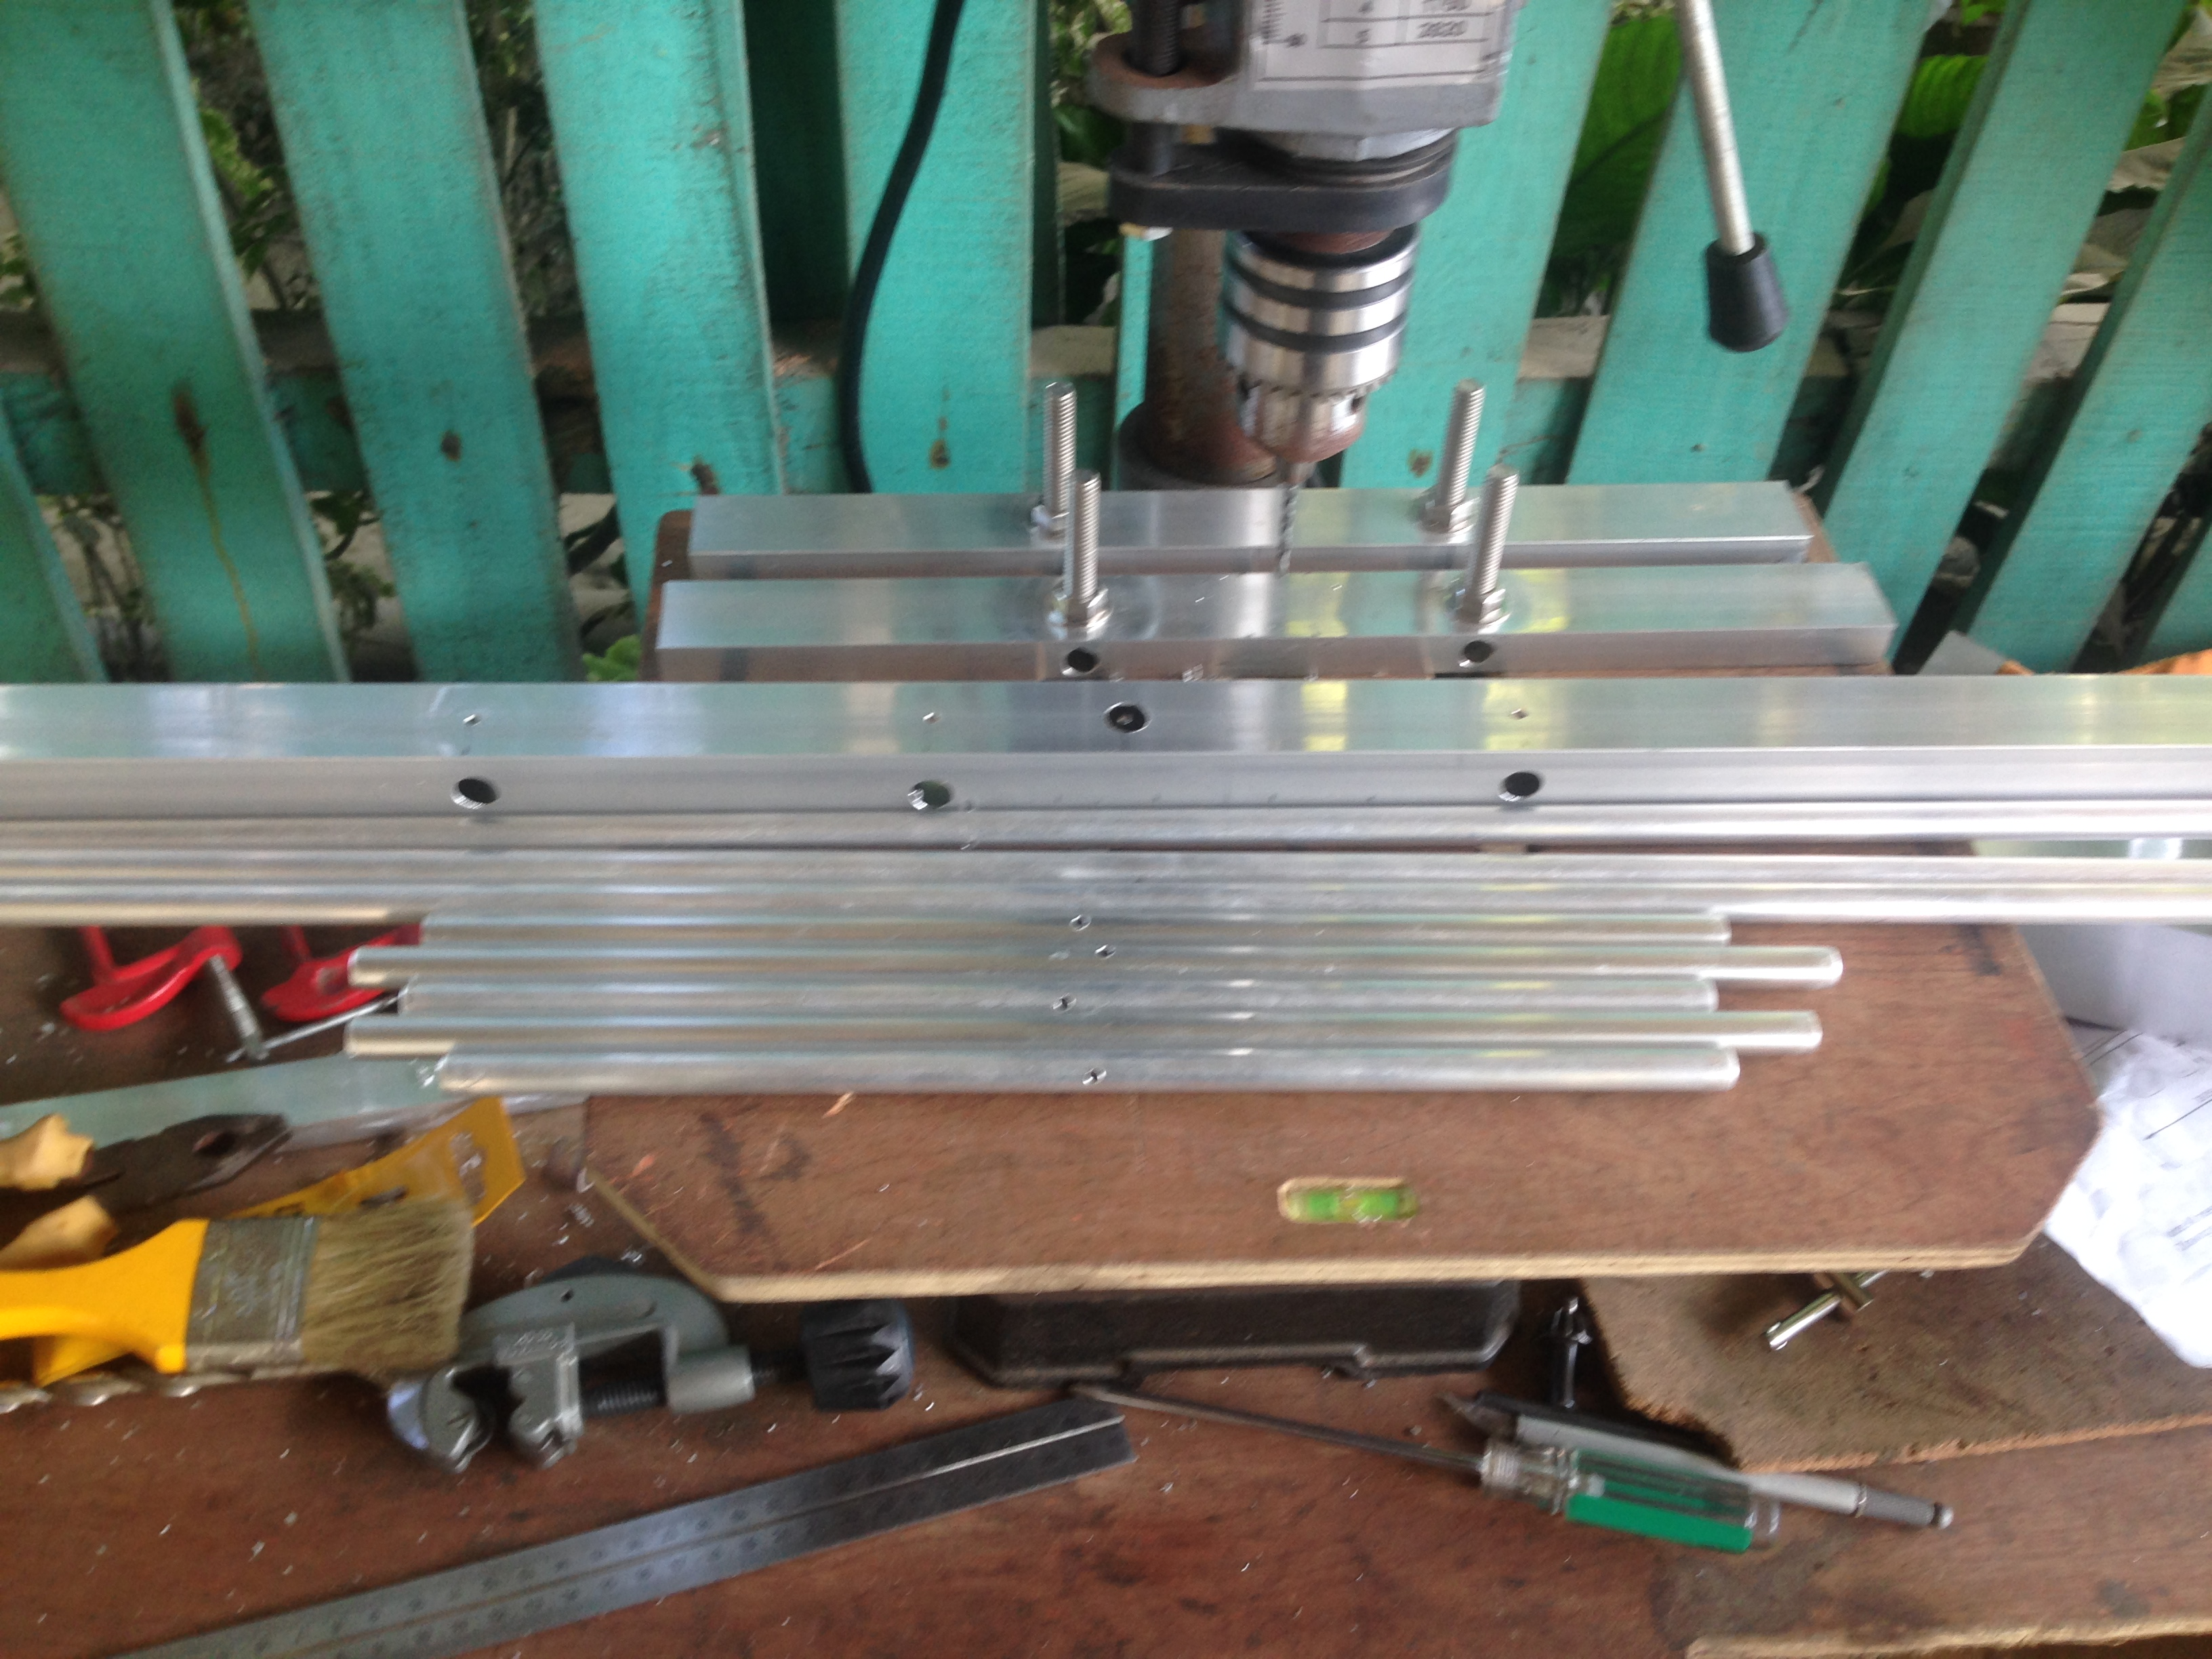 Preparing the materials 3x5 cross yagi